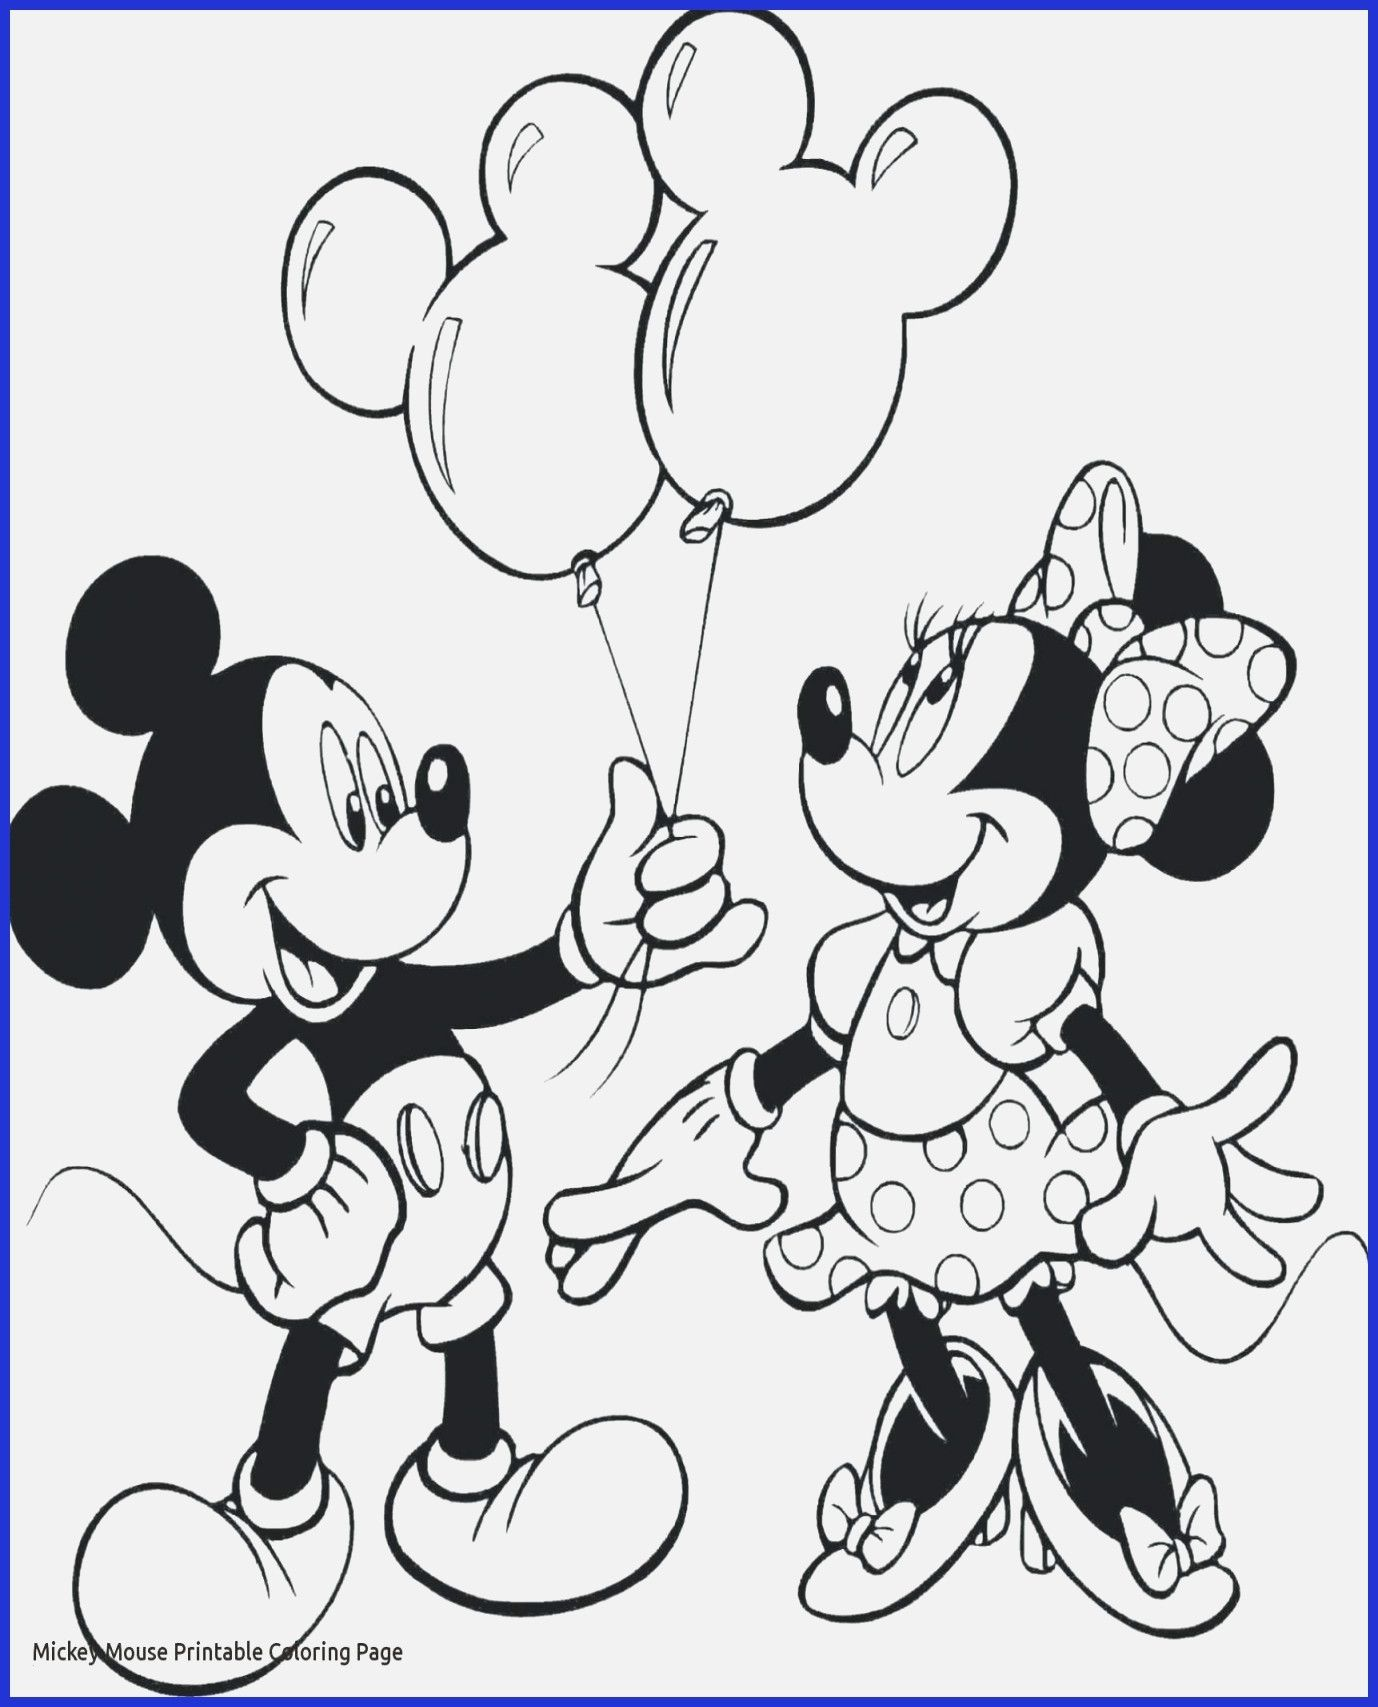 Mickey And Minnie Mouse Coloring Pages Printables Free Printable Mickey And Minni Minnie Mouse Drawing Mickey Mouse Coloring Pages Minnie Mouse Coloring Pages